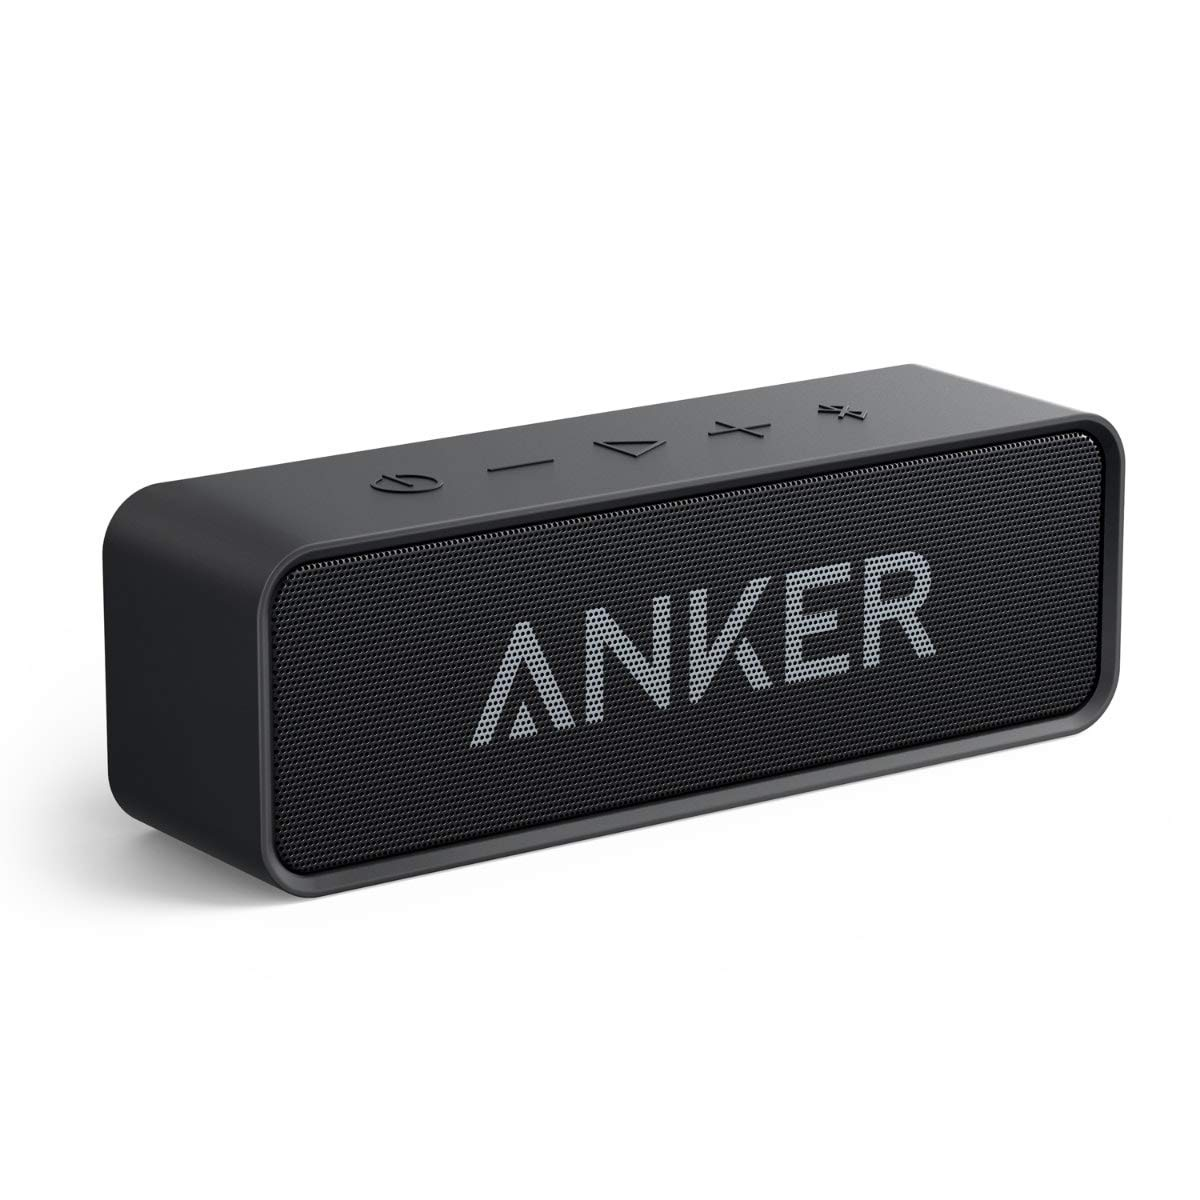 Anker SoundCore 24-Hour Playtime Bluetooth Speaker with Loud 10W Stereo Sound, Rich Bass, 66 ft Bluetooth Range, Built-in Mic. Portable Wireless Speaker for iPhone, Samsung, and More